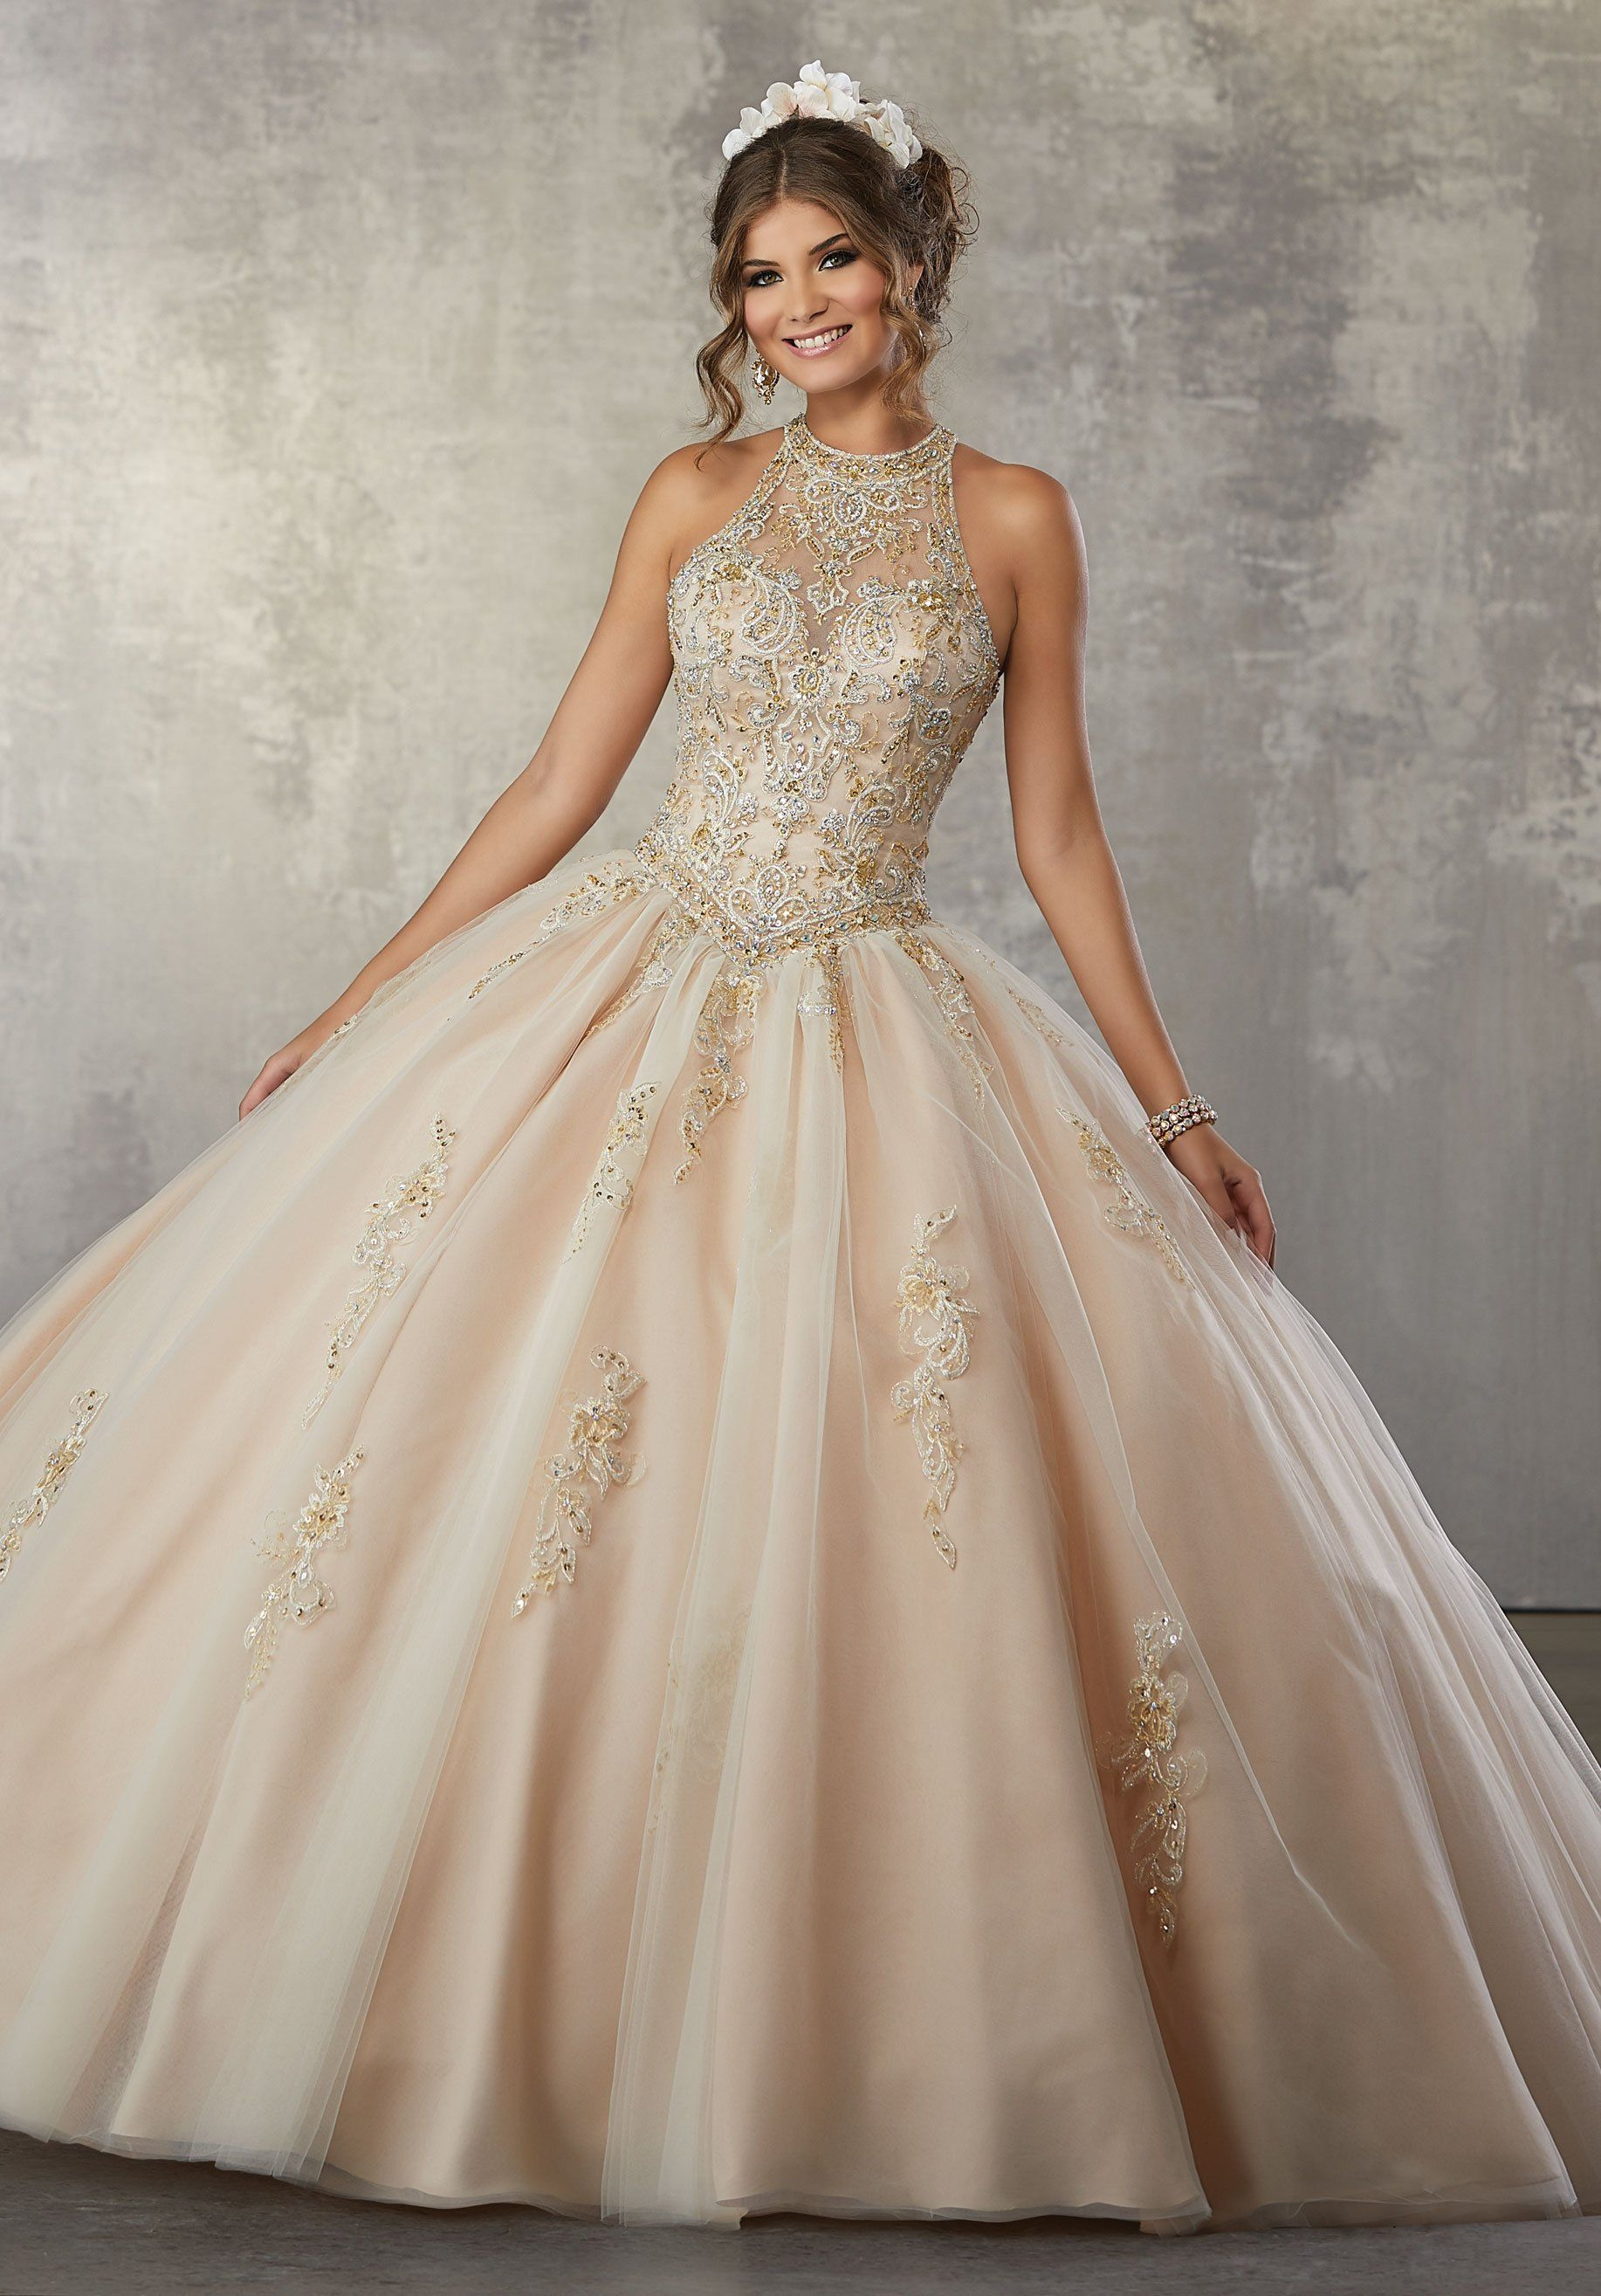 Illusion A Line Quinceanera Dress By Mori Lee Vizcaya 89178 Quinceanera Dresses Gold Pretty Quinceanera Dresses Quinceanera Dresses Pink [ 2630 x 1834 Pixel ]